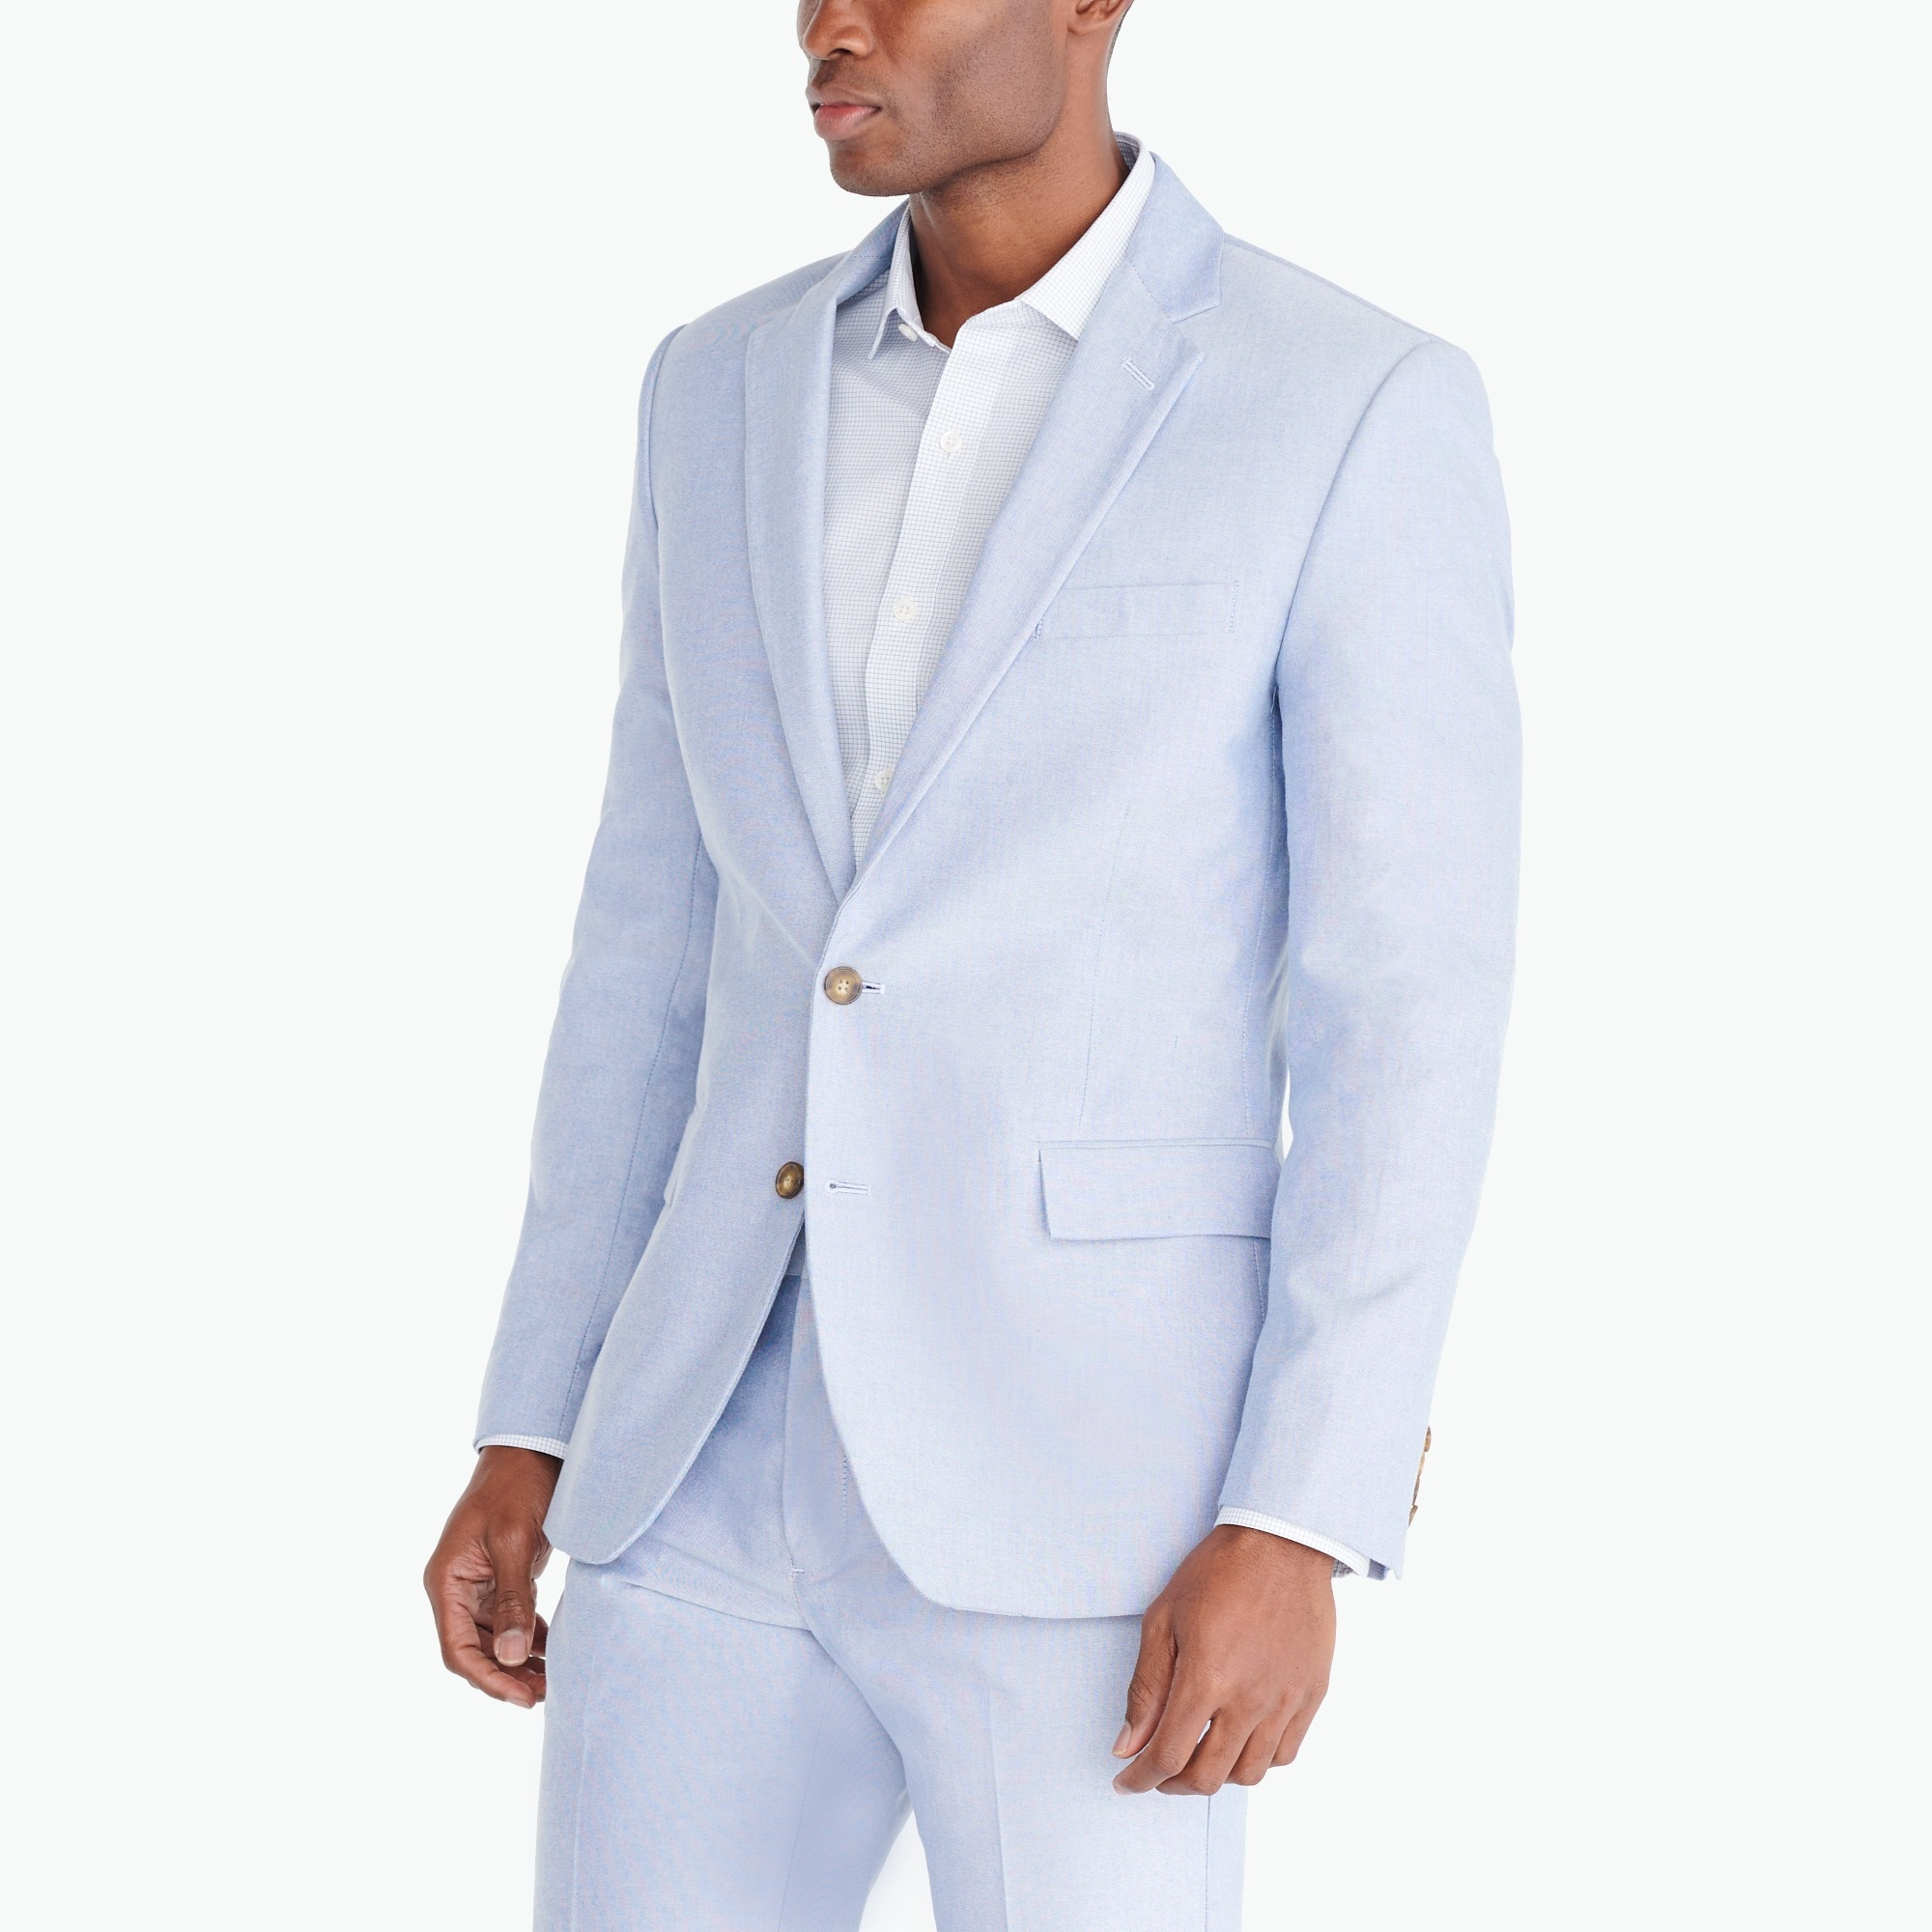 Image 2 for Slim-fit Thompson suit jacket in oxford cloth